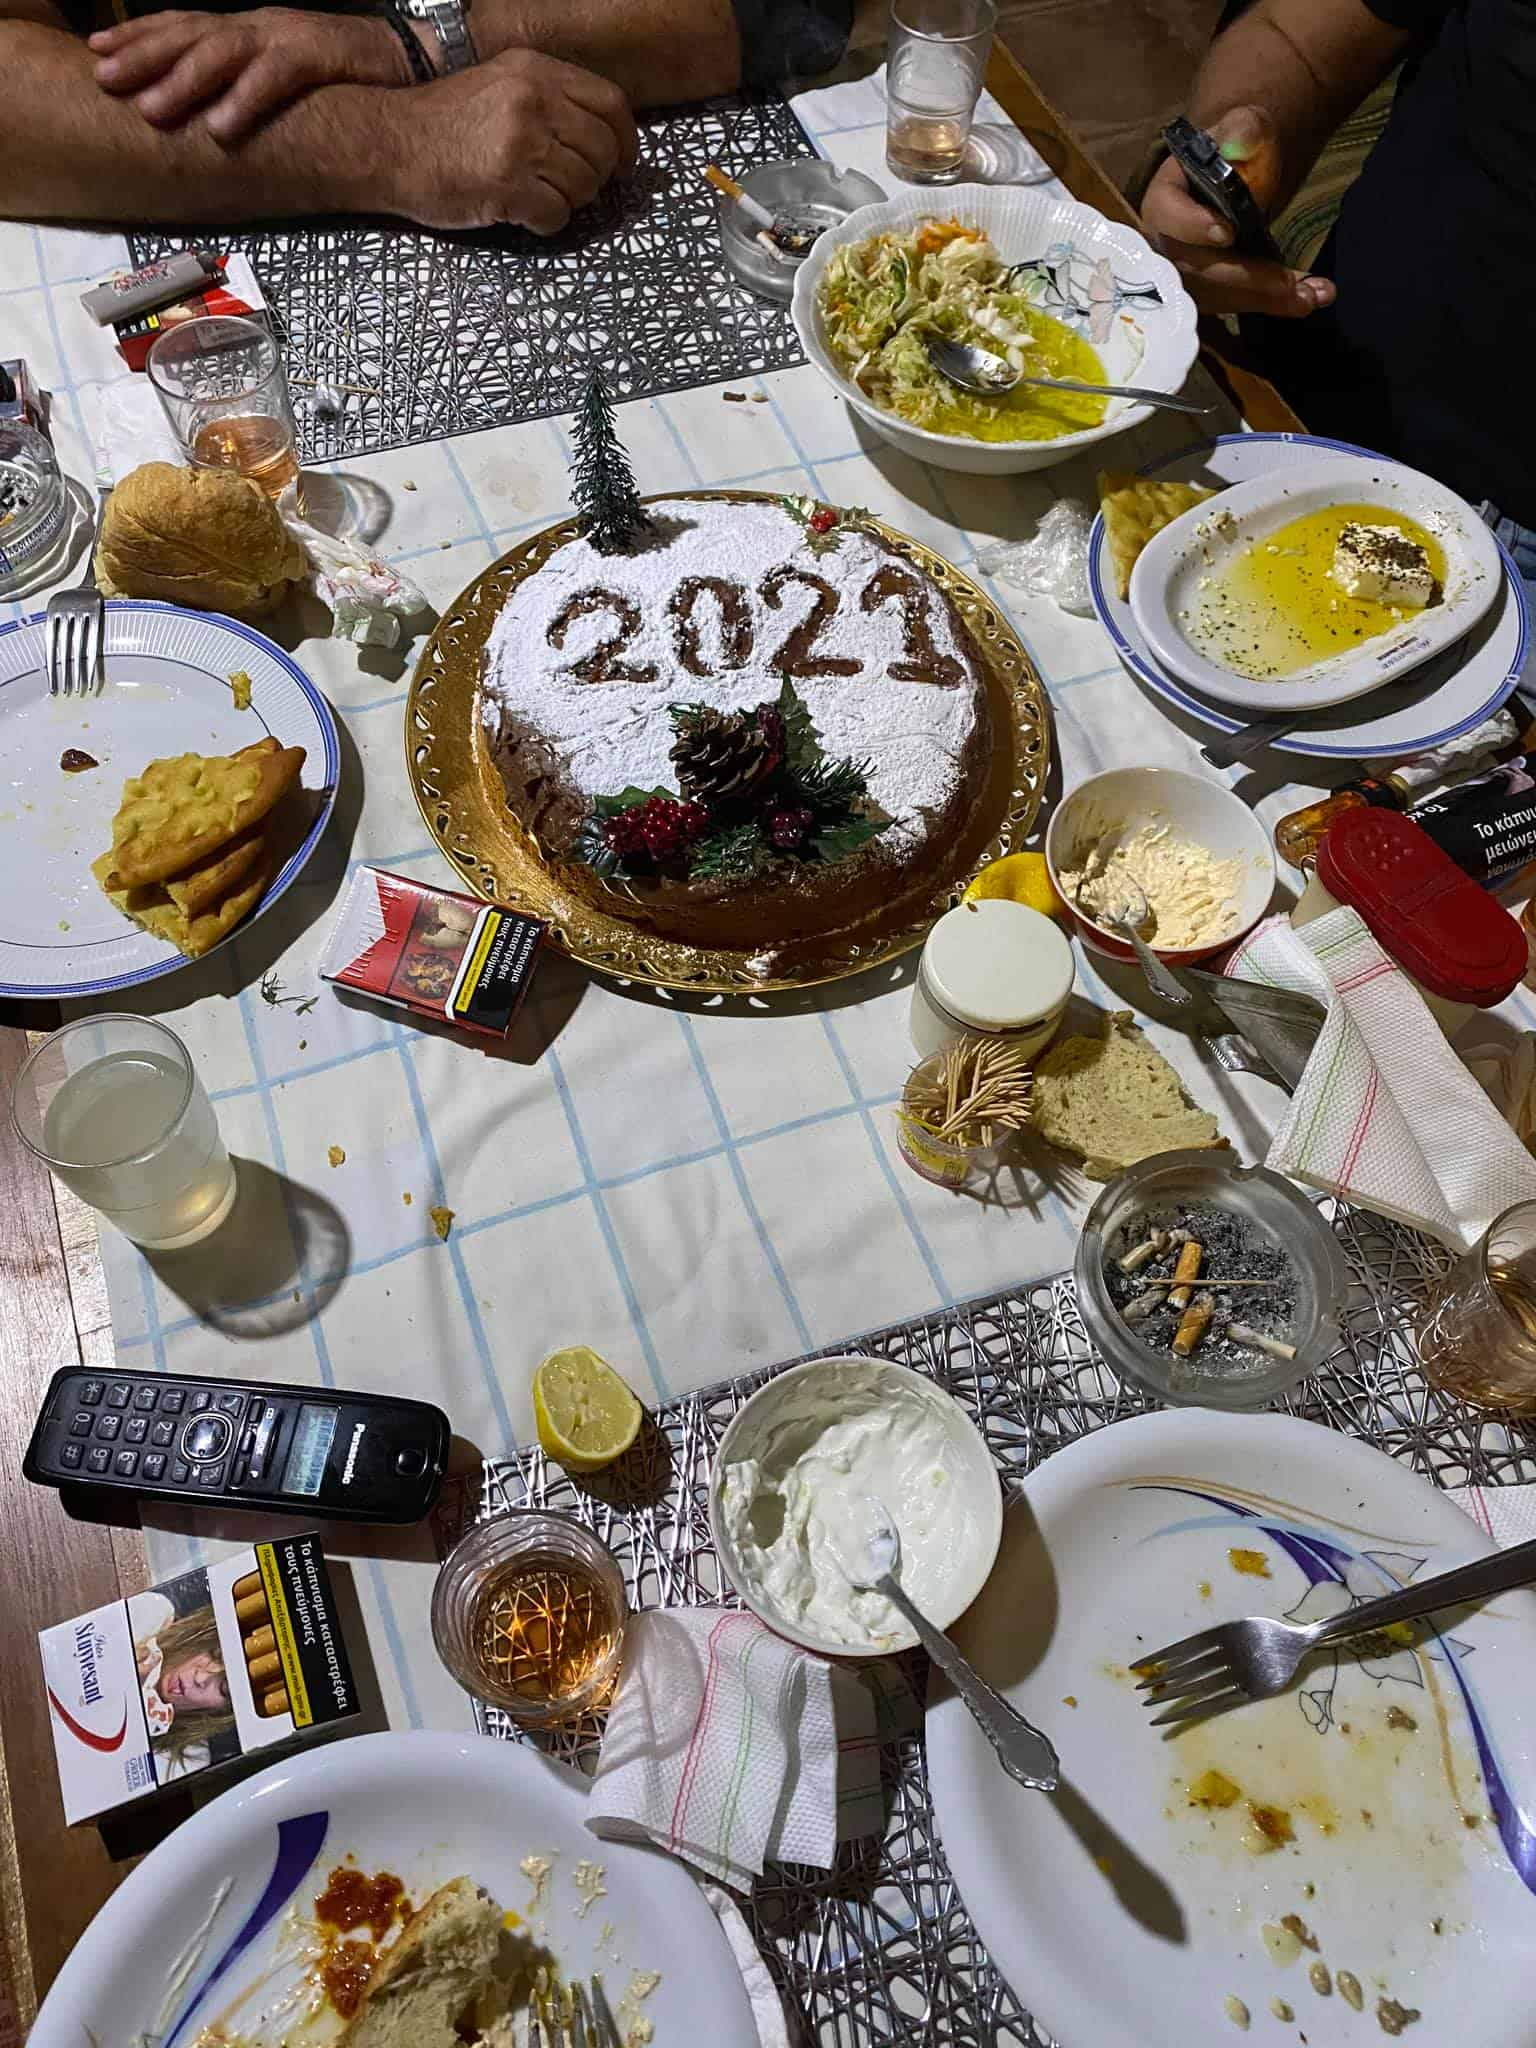 Facts about Greece: Greeks eat a special cake for New Year's Day